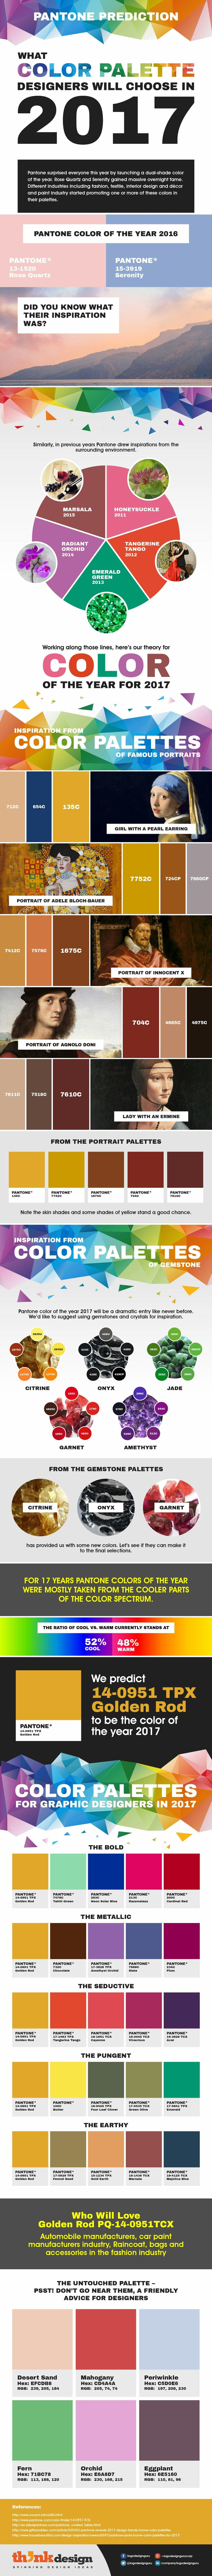 Colors of the year 2017 by PantoneMore At FOSTERGINGER @ Pinterest